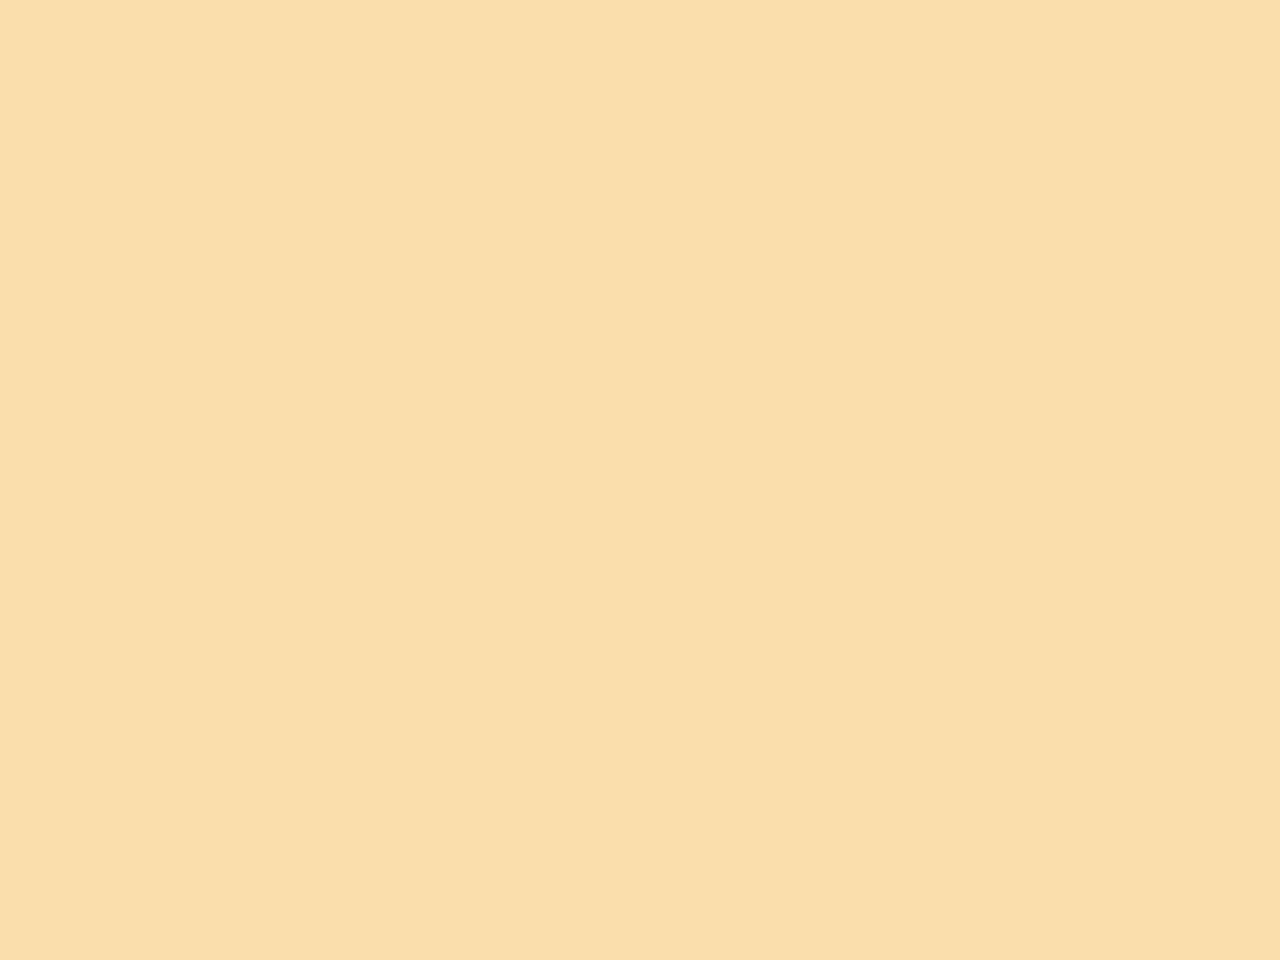 1280x960 Peach-yellow Solid Color Background